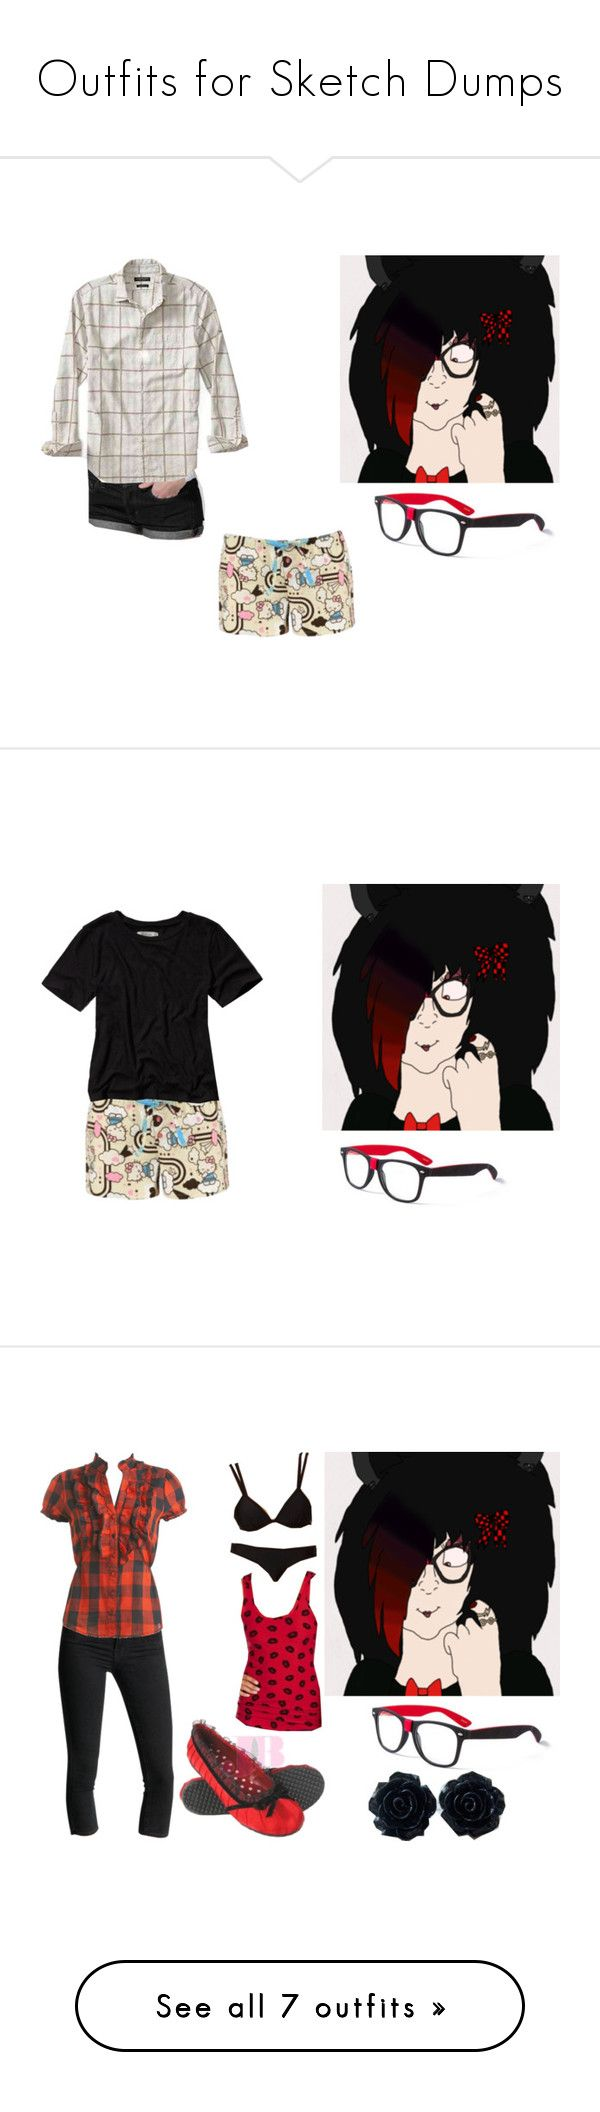 """Outfits for Sketch Dumps"" by brainyxbat ❤ liked on Polyvore featuring claire's, American Apparel, Banana Republic, Abercrombie & Fitch, J Brand, Wet Seal, Disney, Converse, ASOS and GUESS"